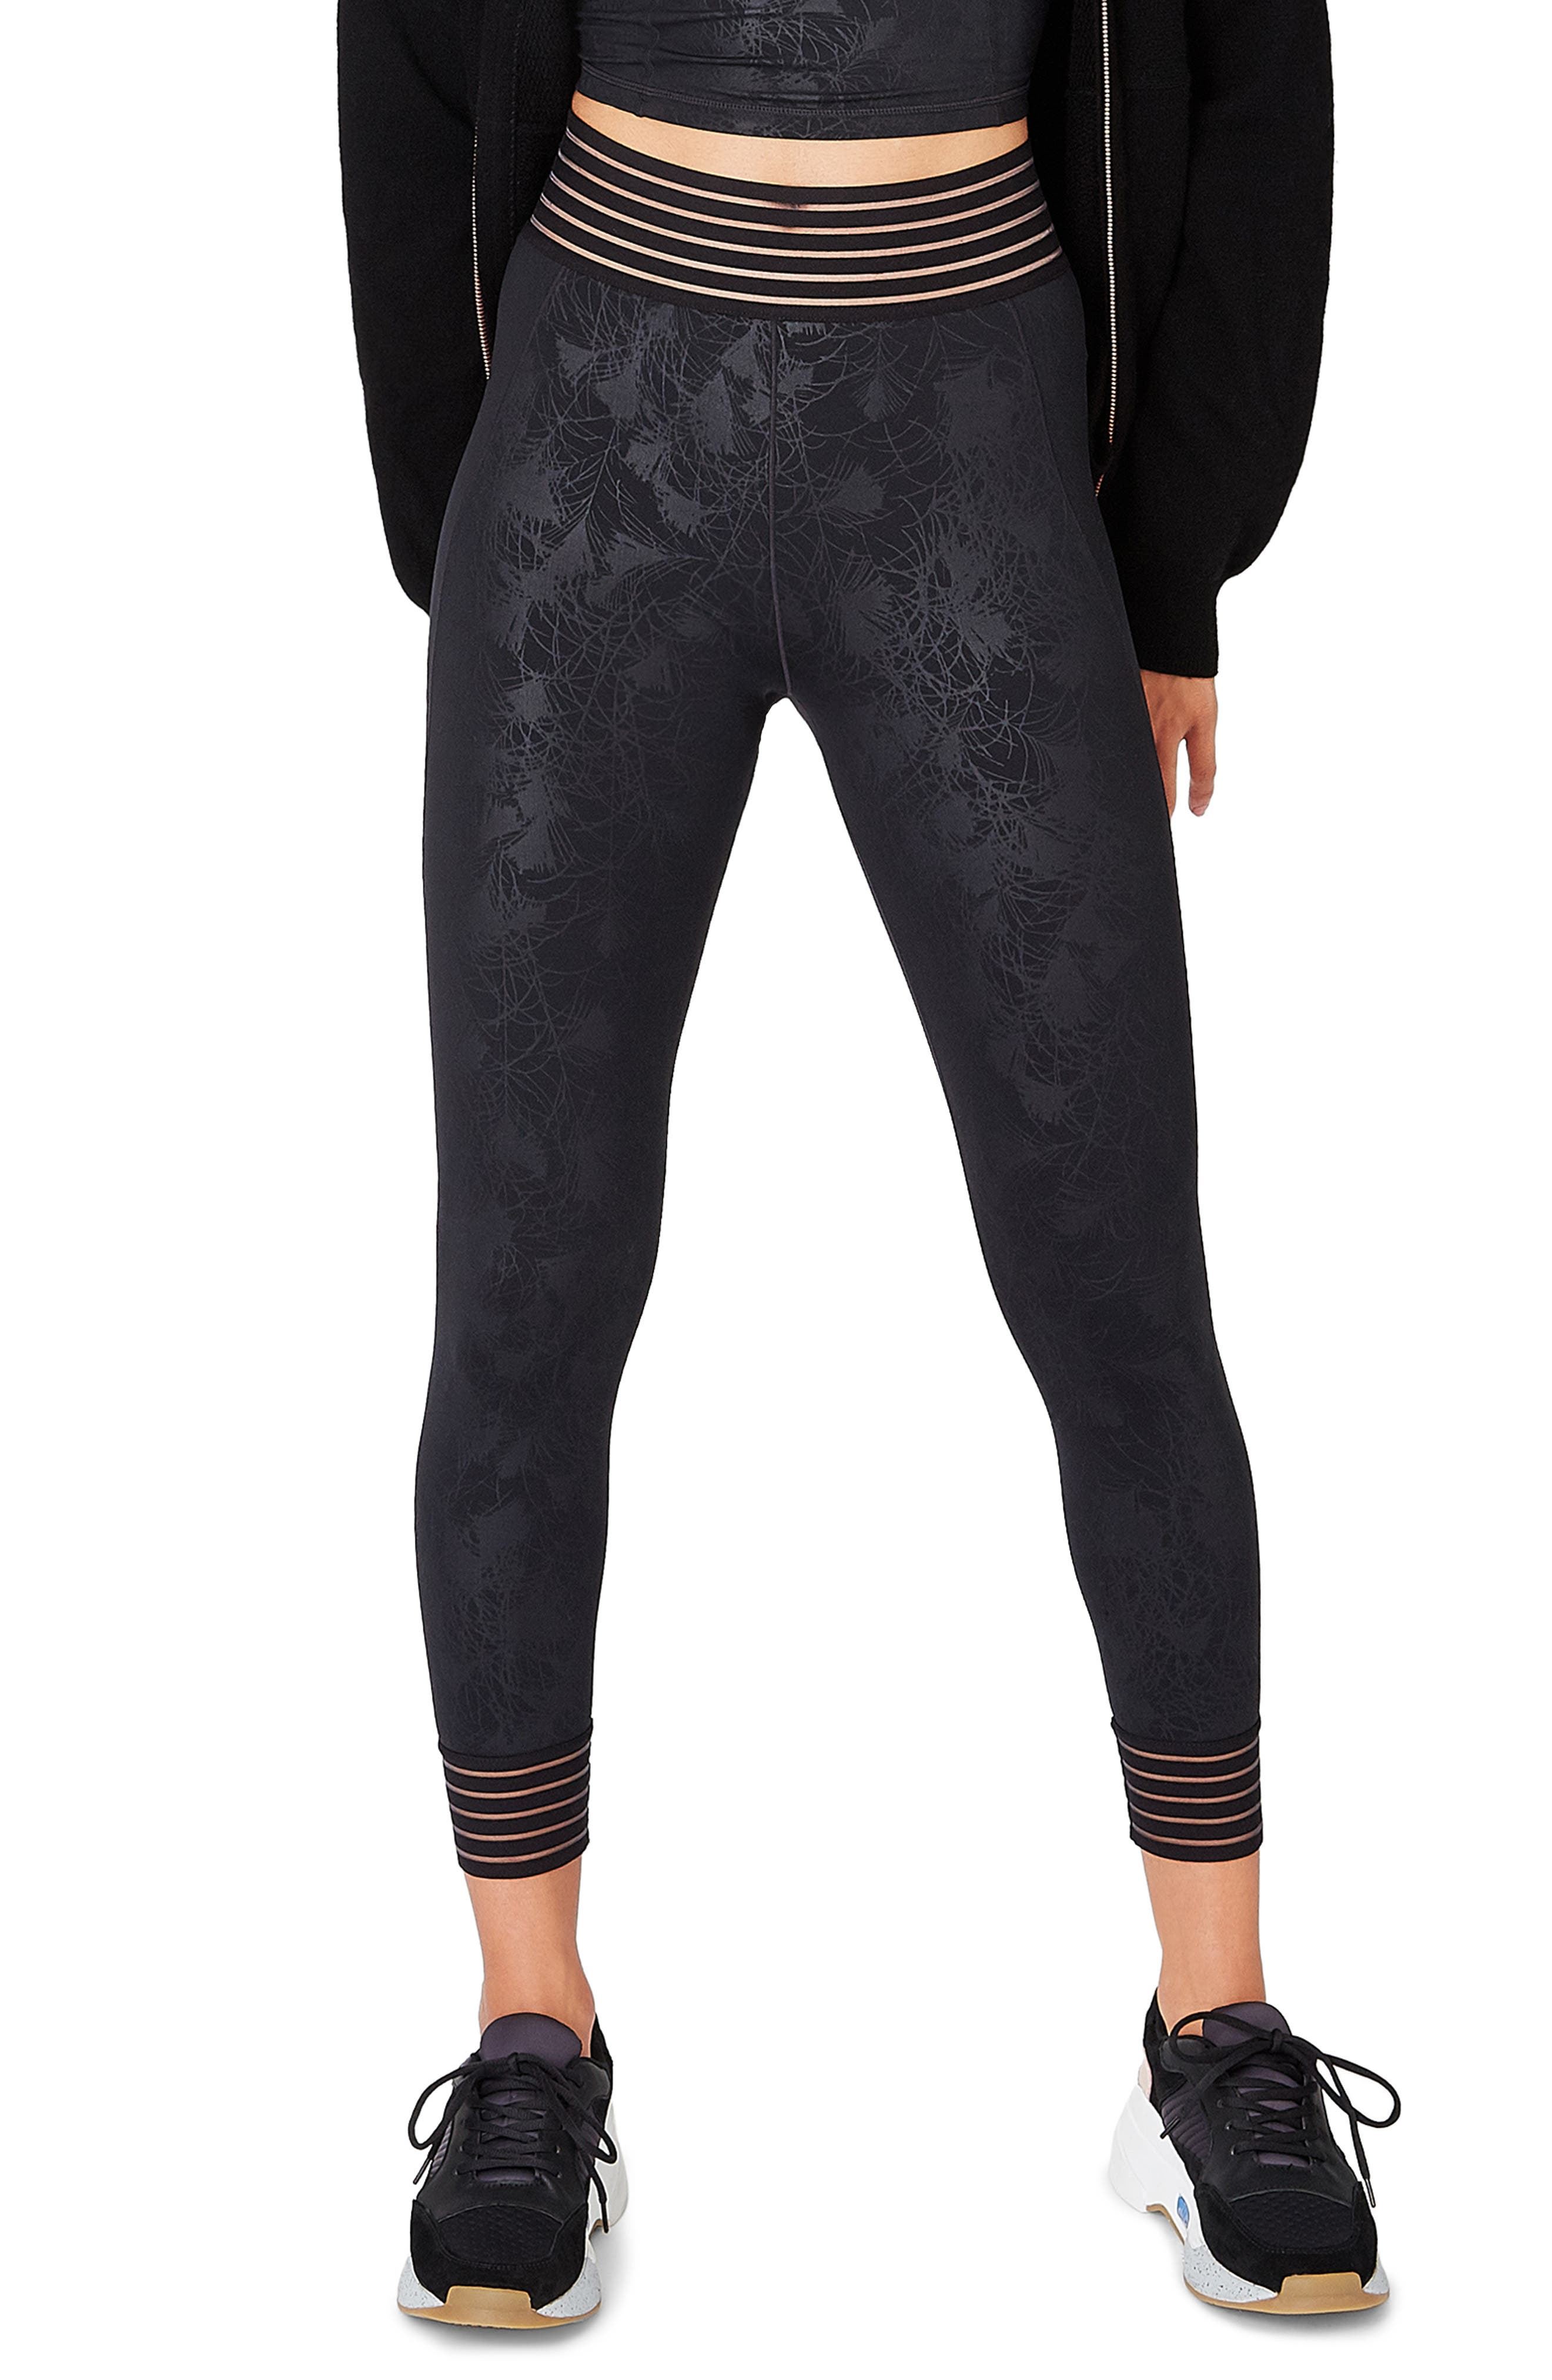 SWEATY BETTY, Contour Leggings, Main thumbnail 1, color, BLACK EMBOSSED FEATHER